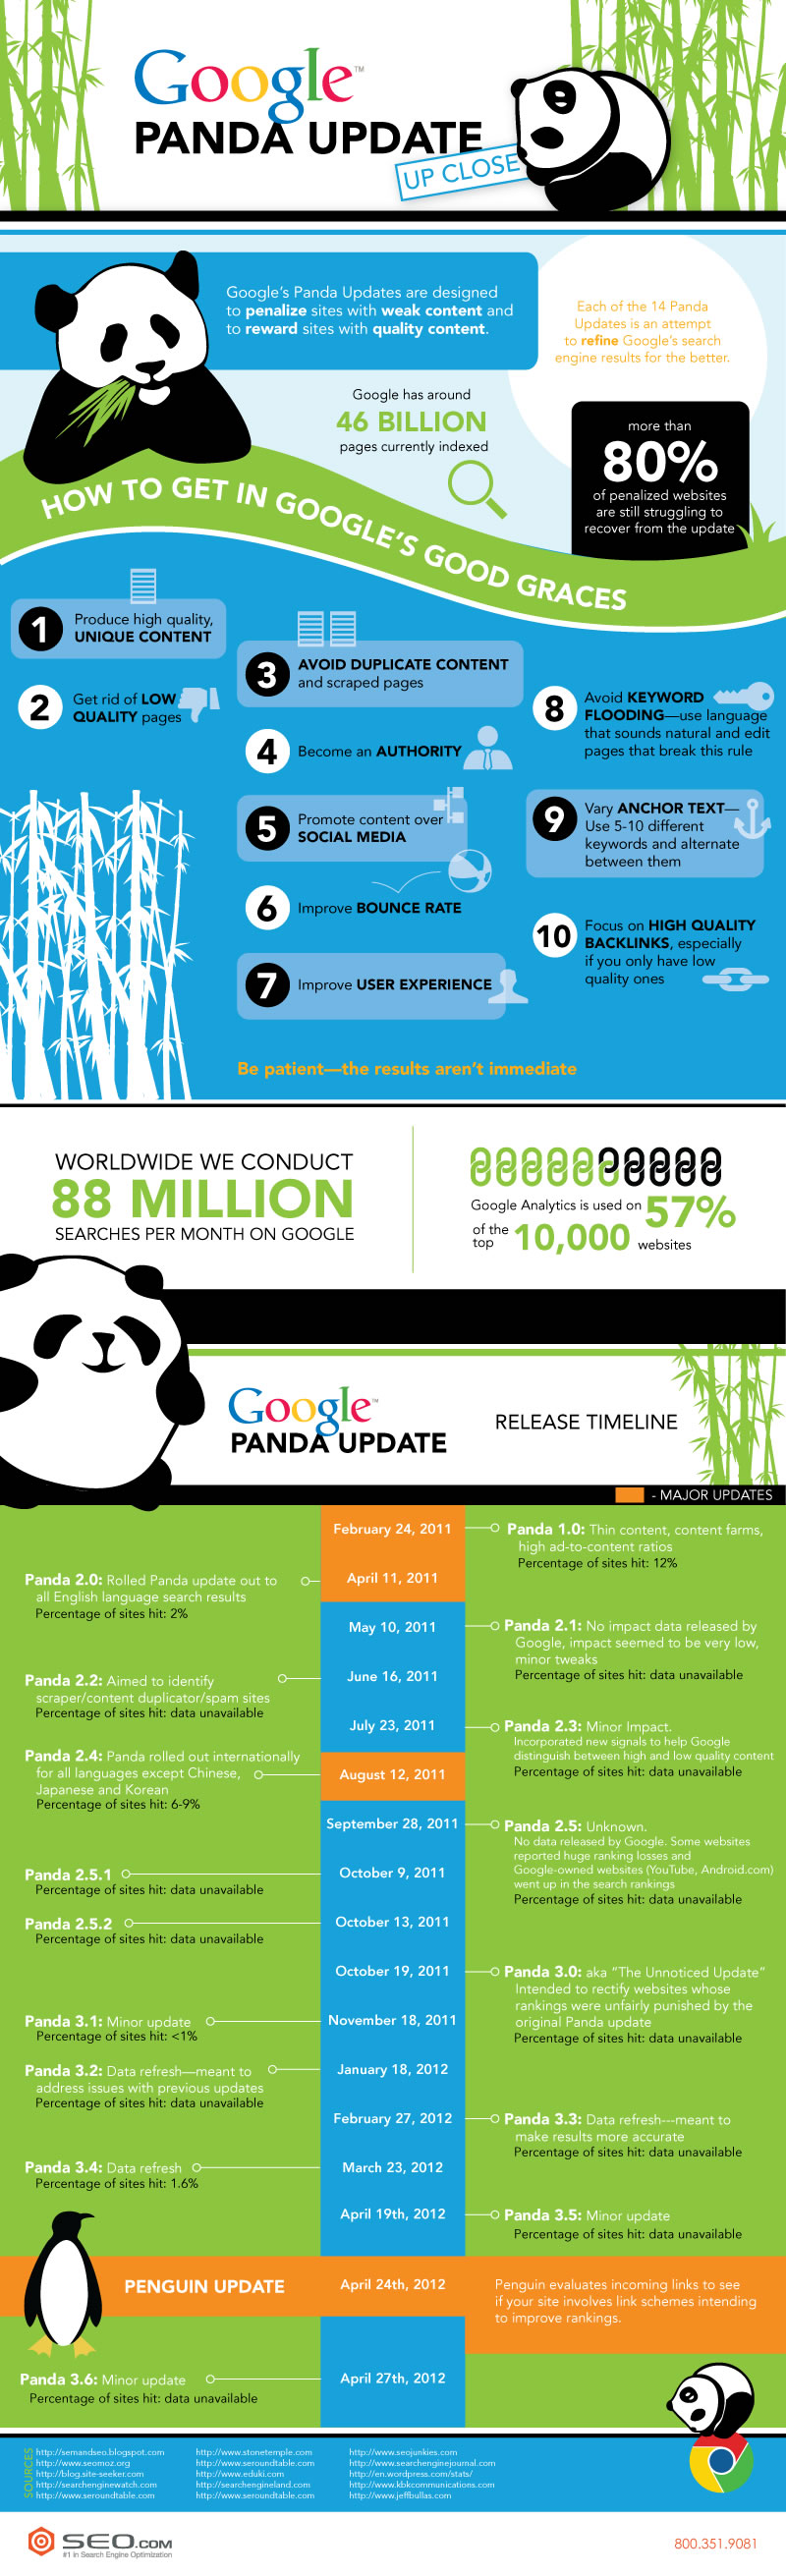 Google-Panda-Update-Up-Close-Infographic